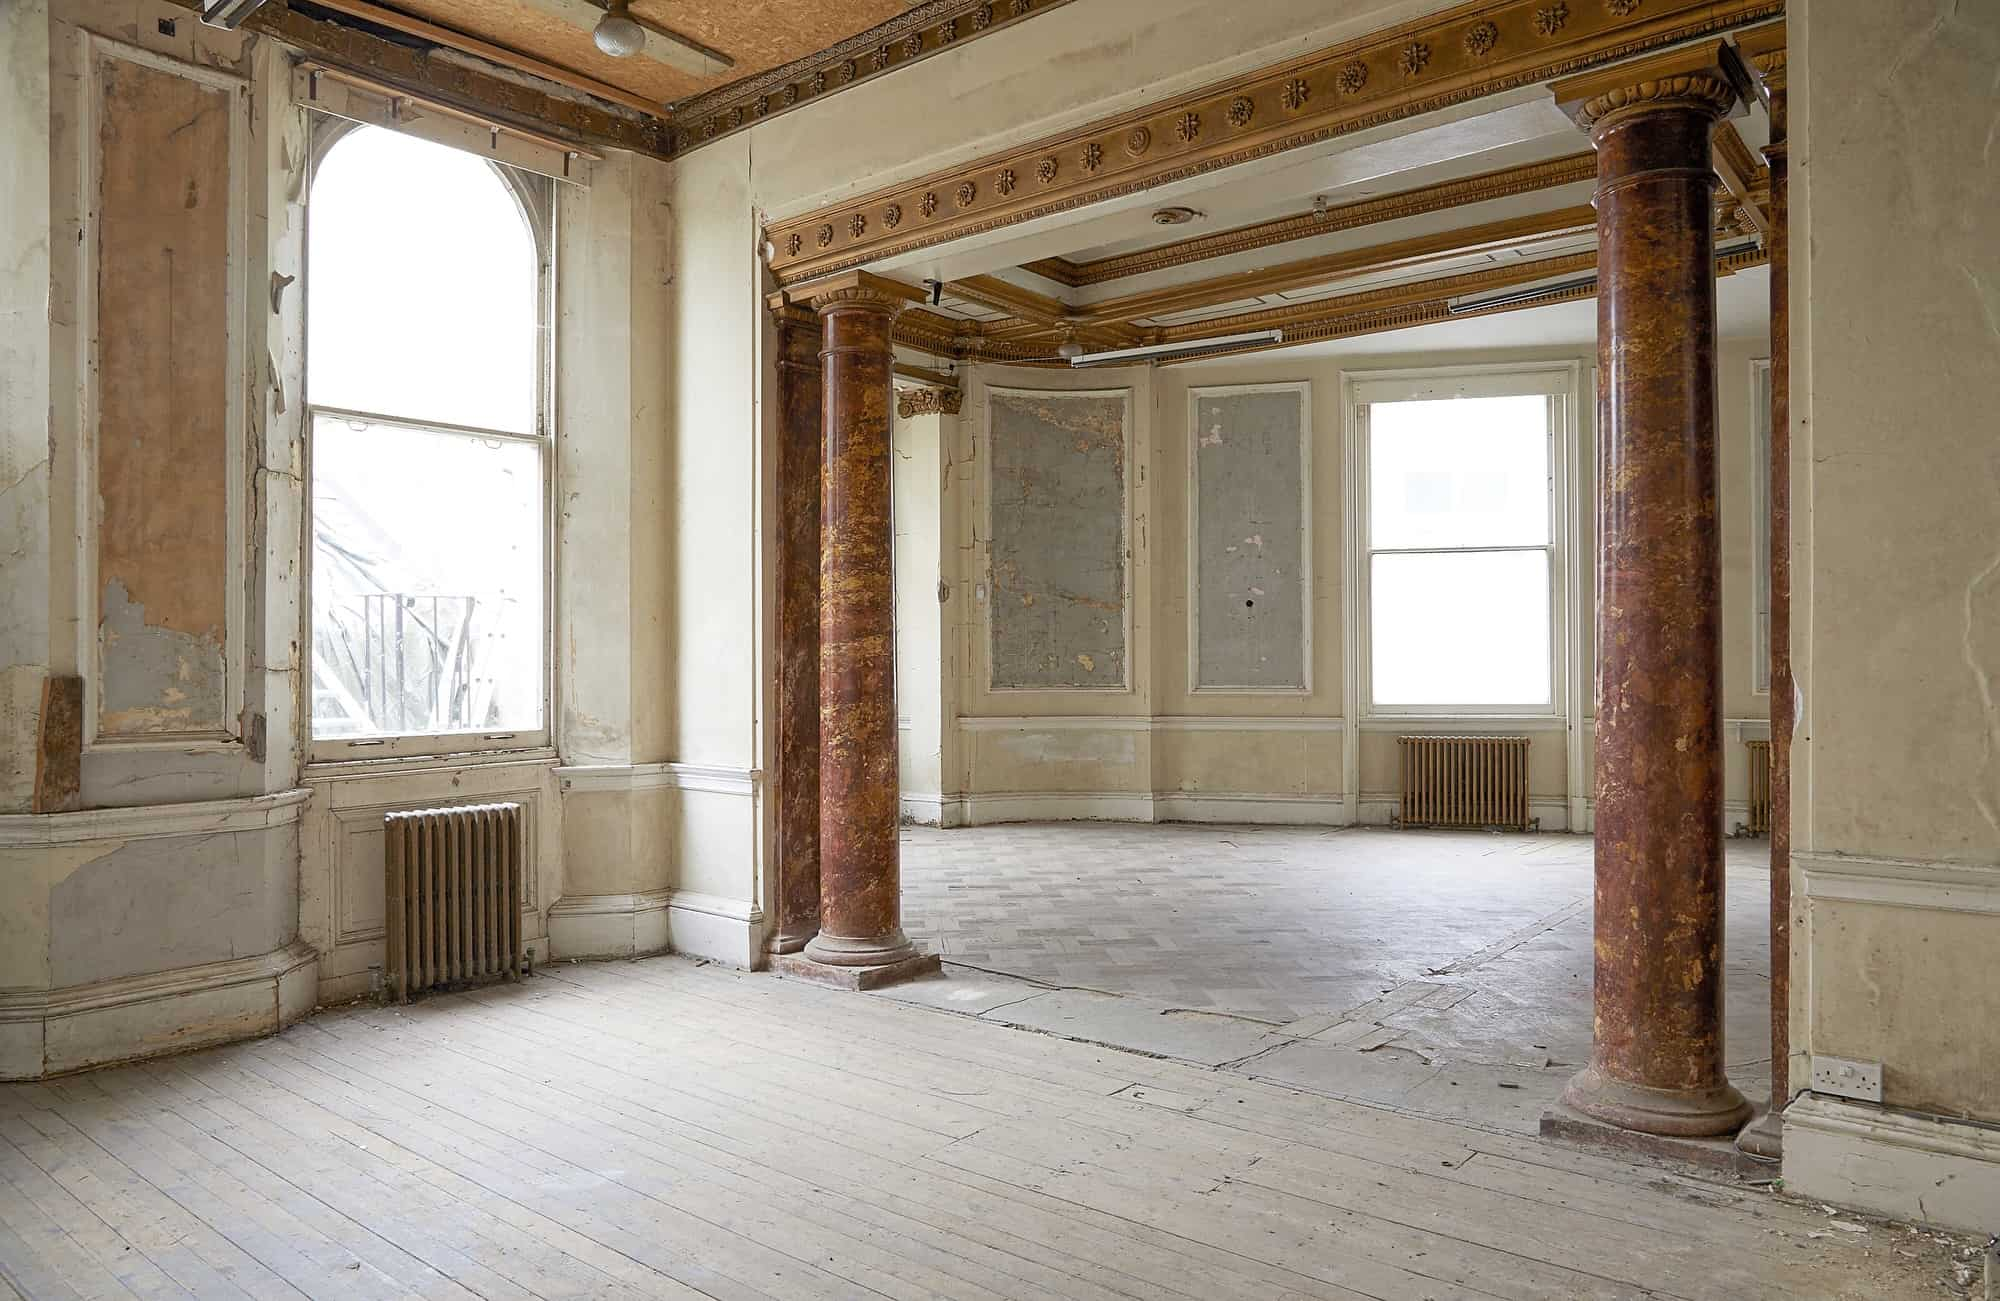 The Averard Hotel W2 - A palatial Grade II listed former hotel having fallen into a derelict state - The Location Guys